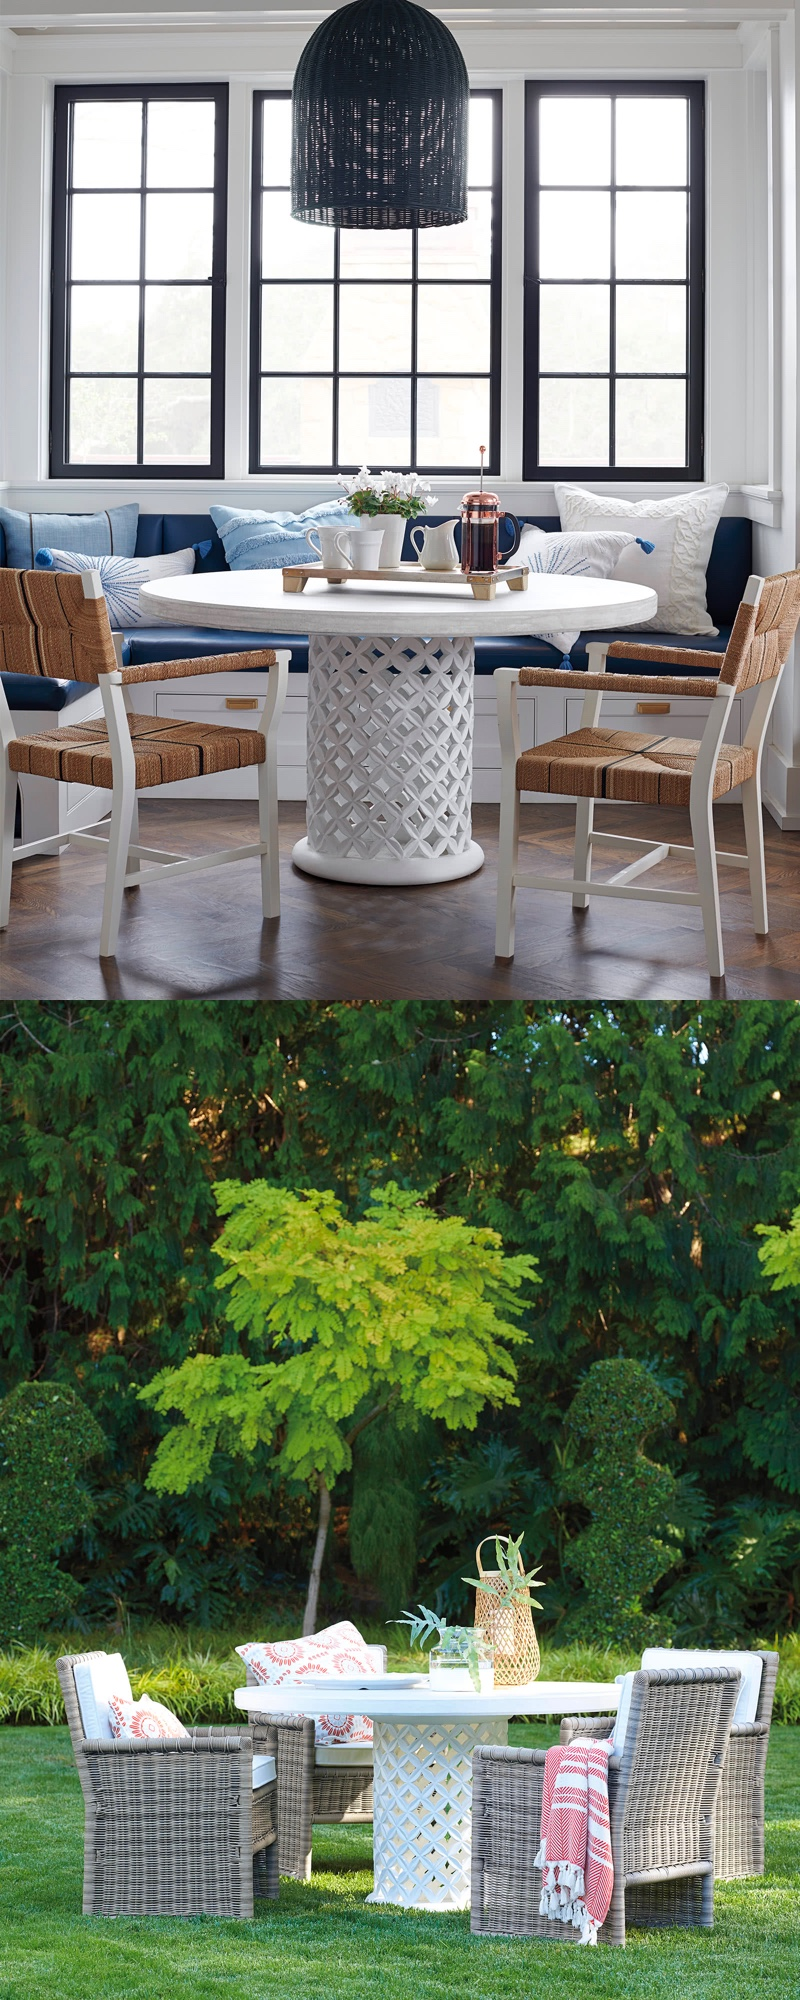 Patterned-Base-Round-White-Dining-Table-For-Indoor-And-Outdoor-Use